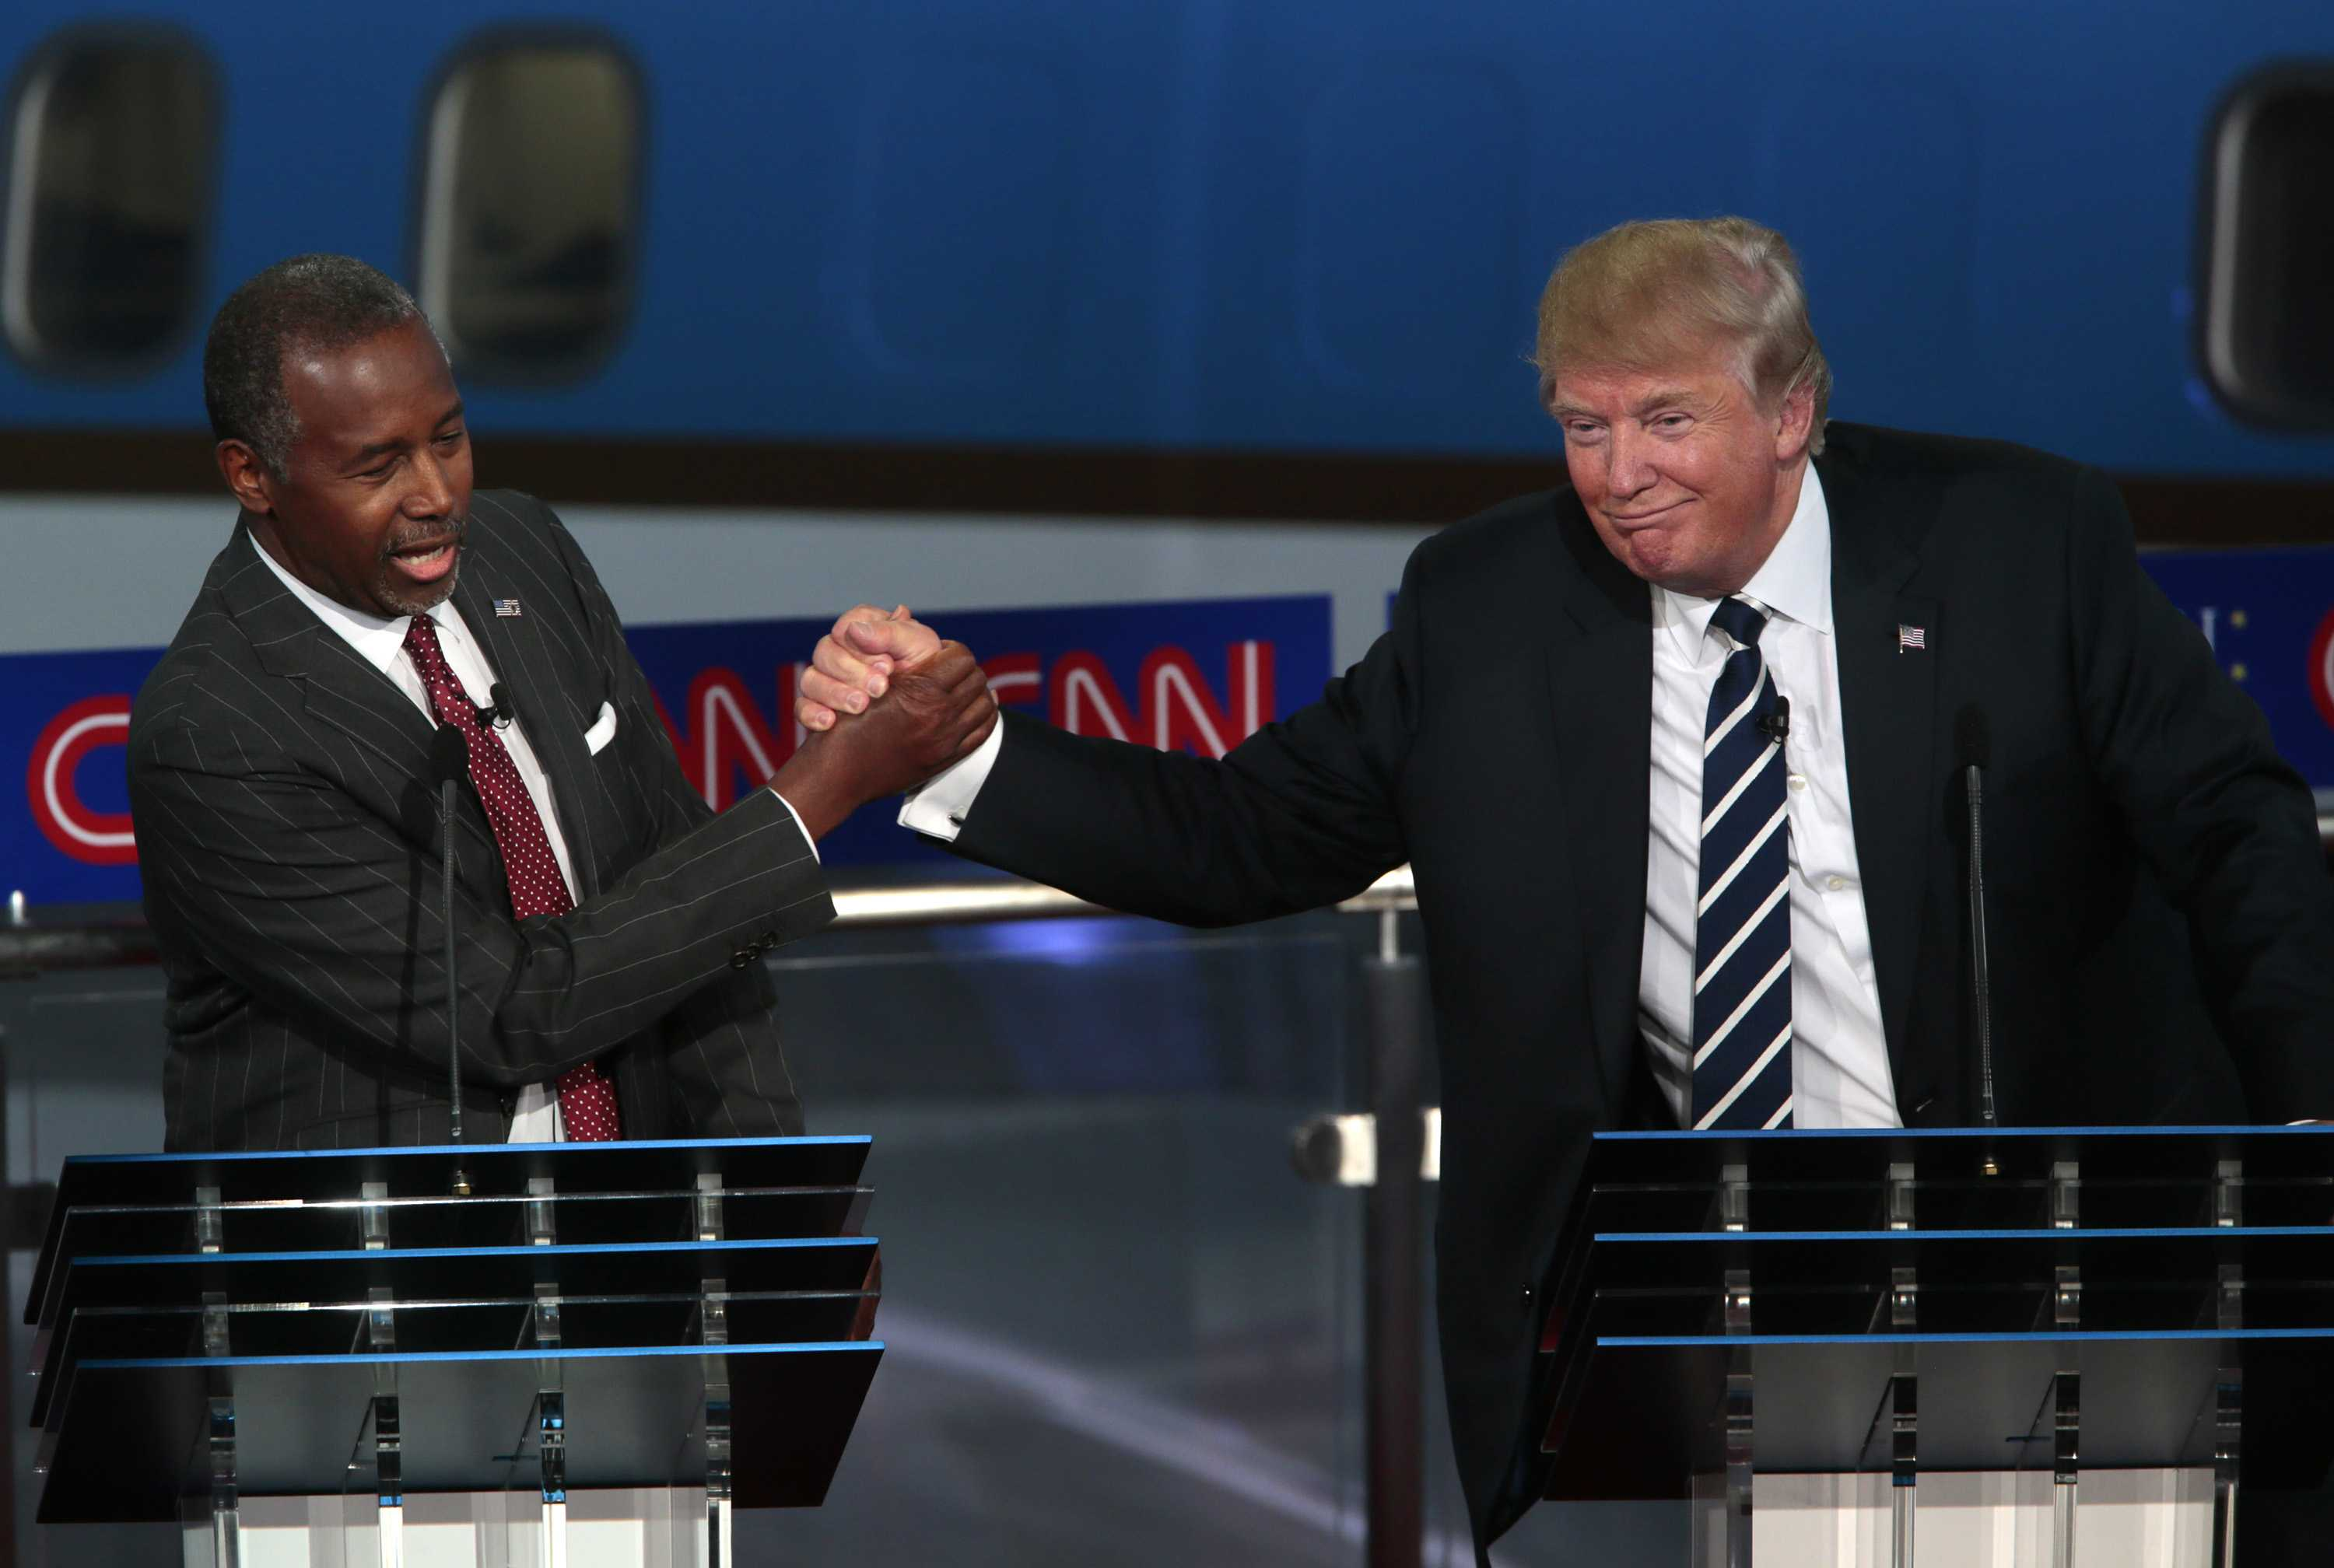 Presidential hopefuls worked to make lasting impressions in recent debates